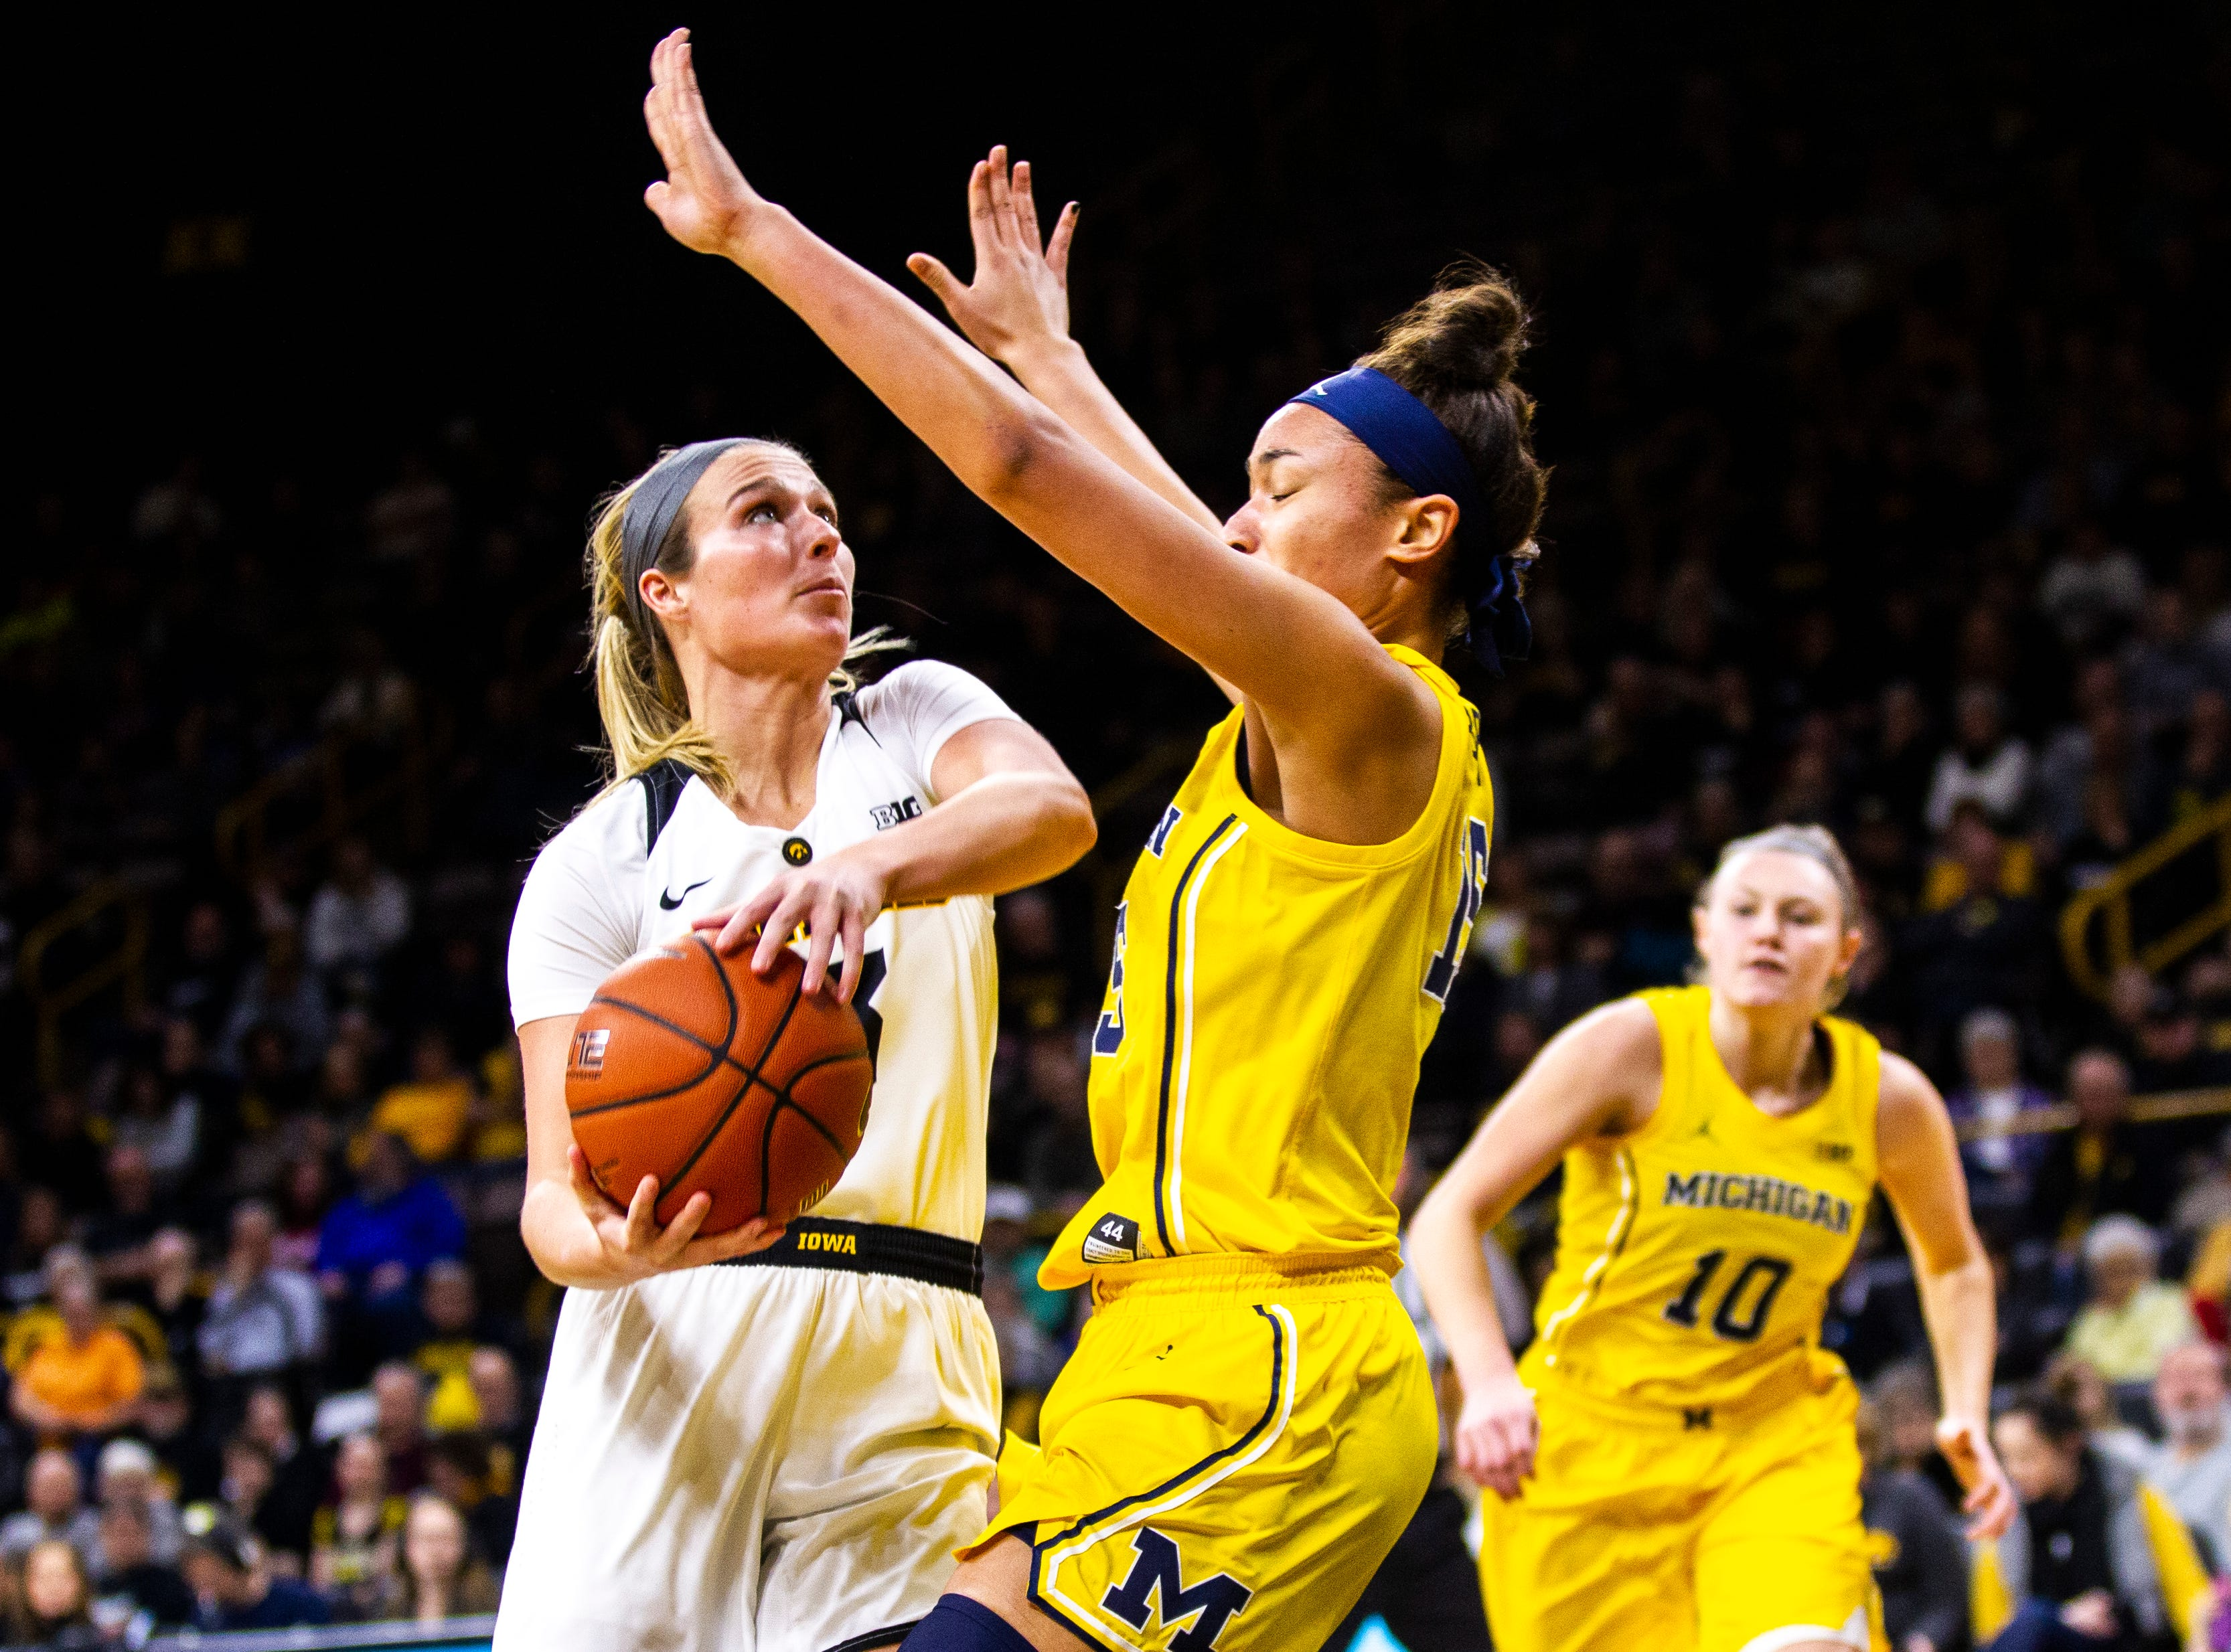 Iowa women's basketball: What we learned from the No. 18 Hawkeyes' win over Michigan